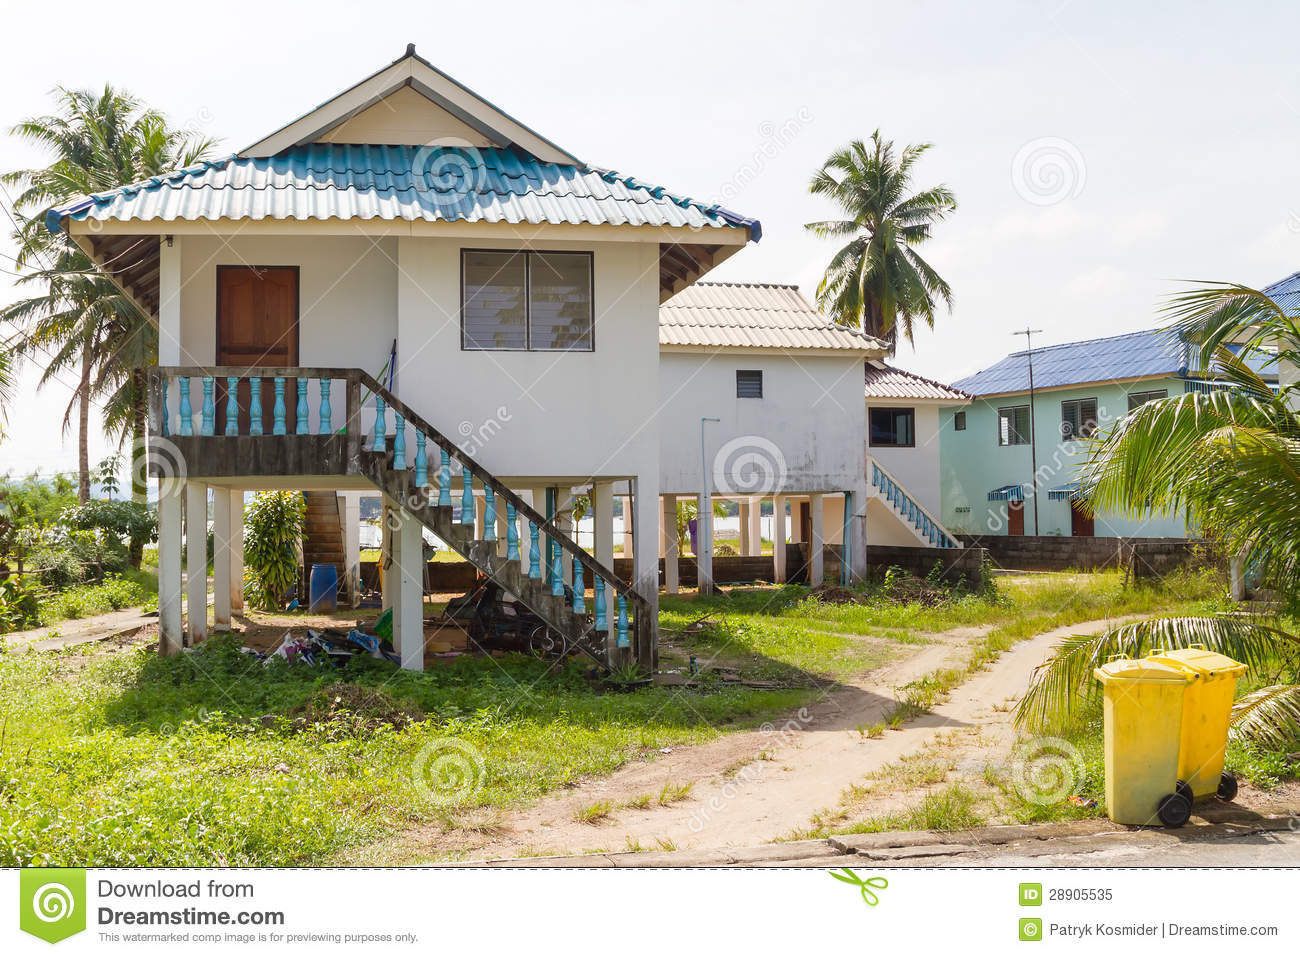 Holiday houses in thailand royalty free stock photo for Thailand houses pictures